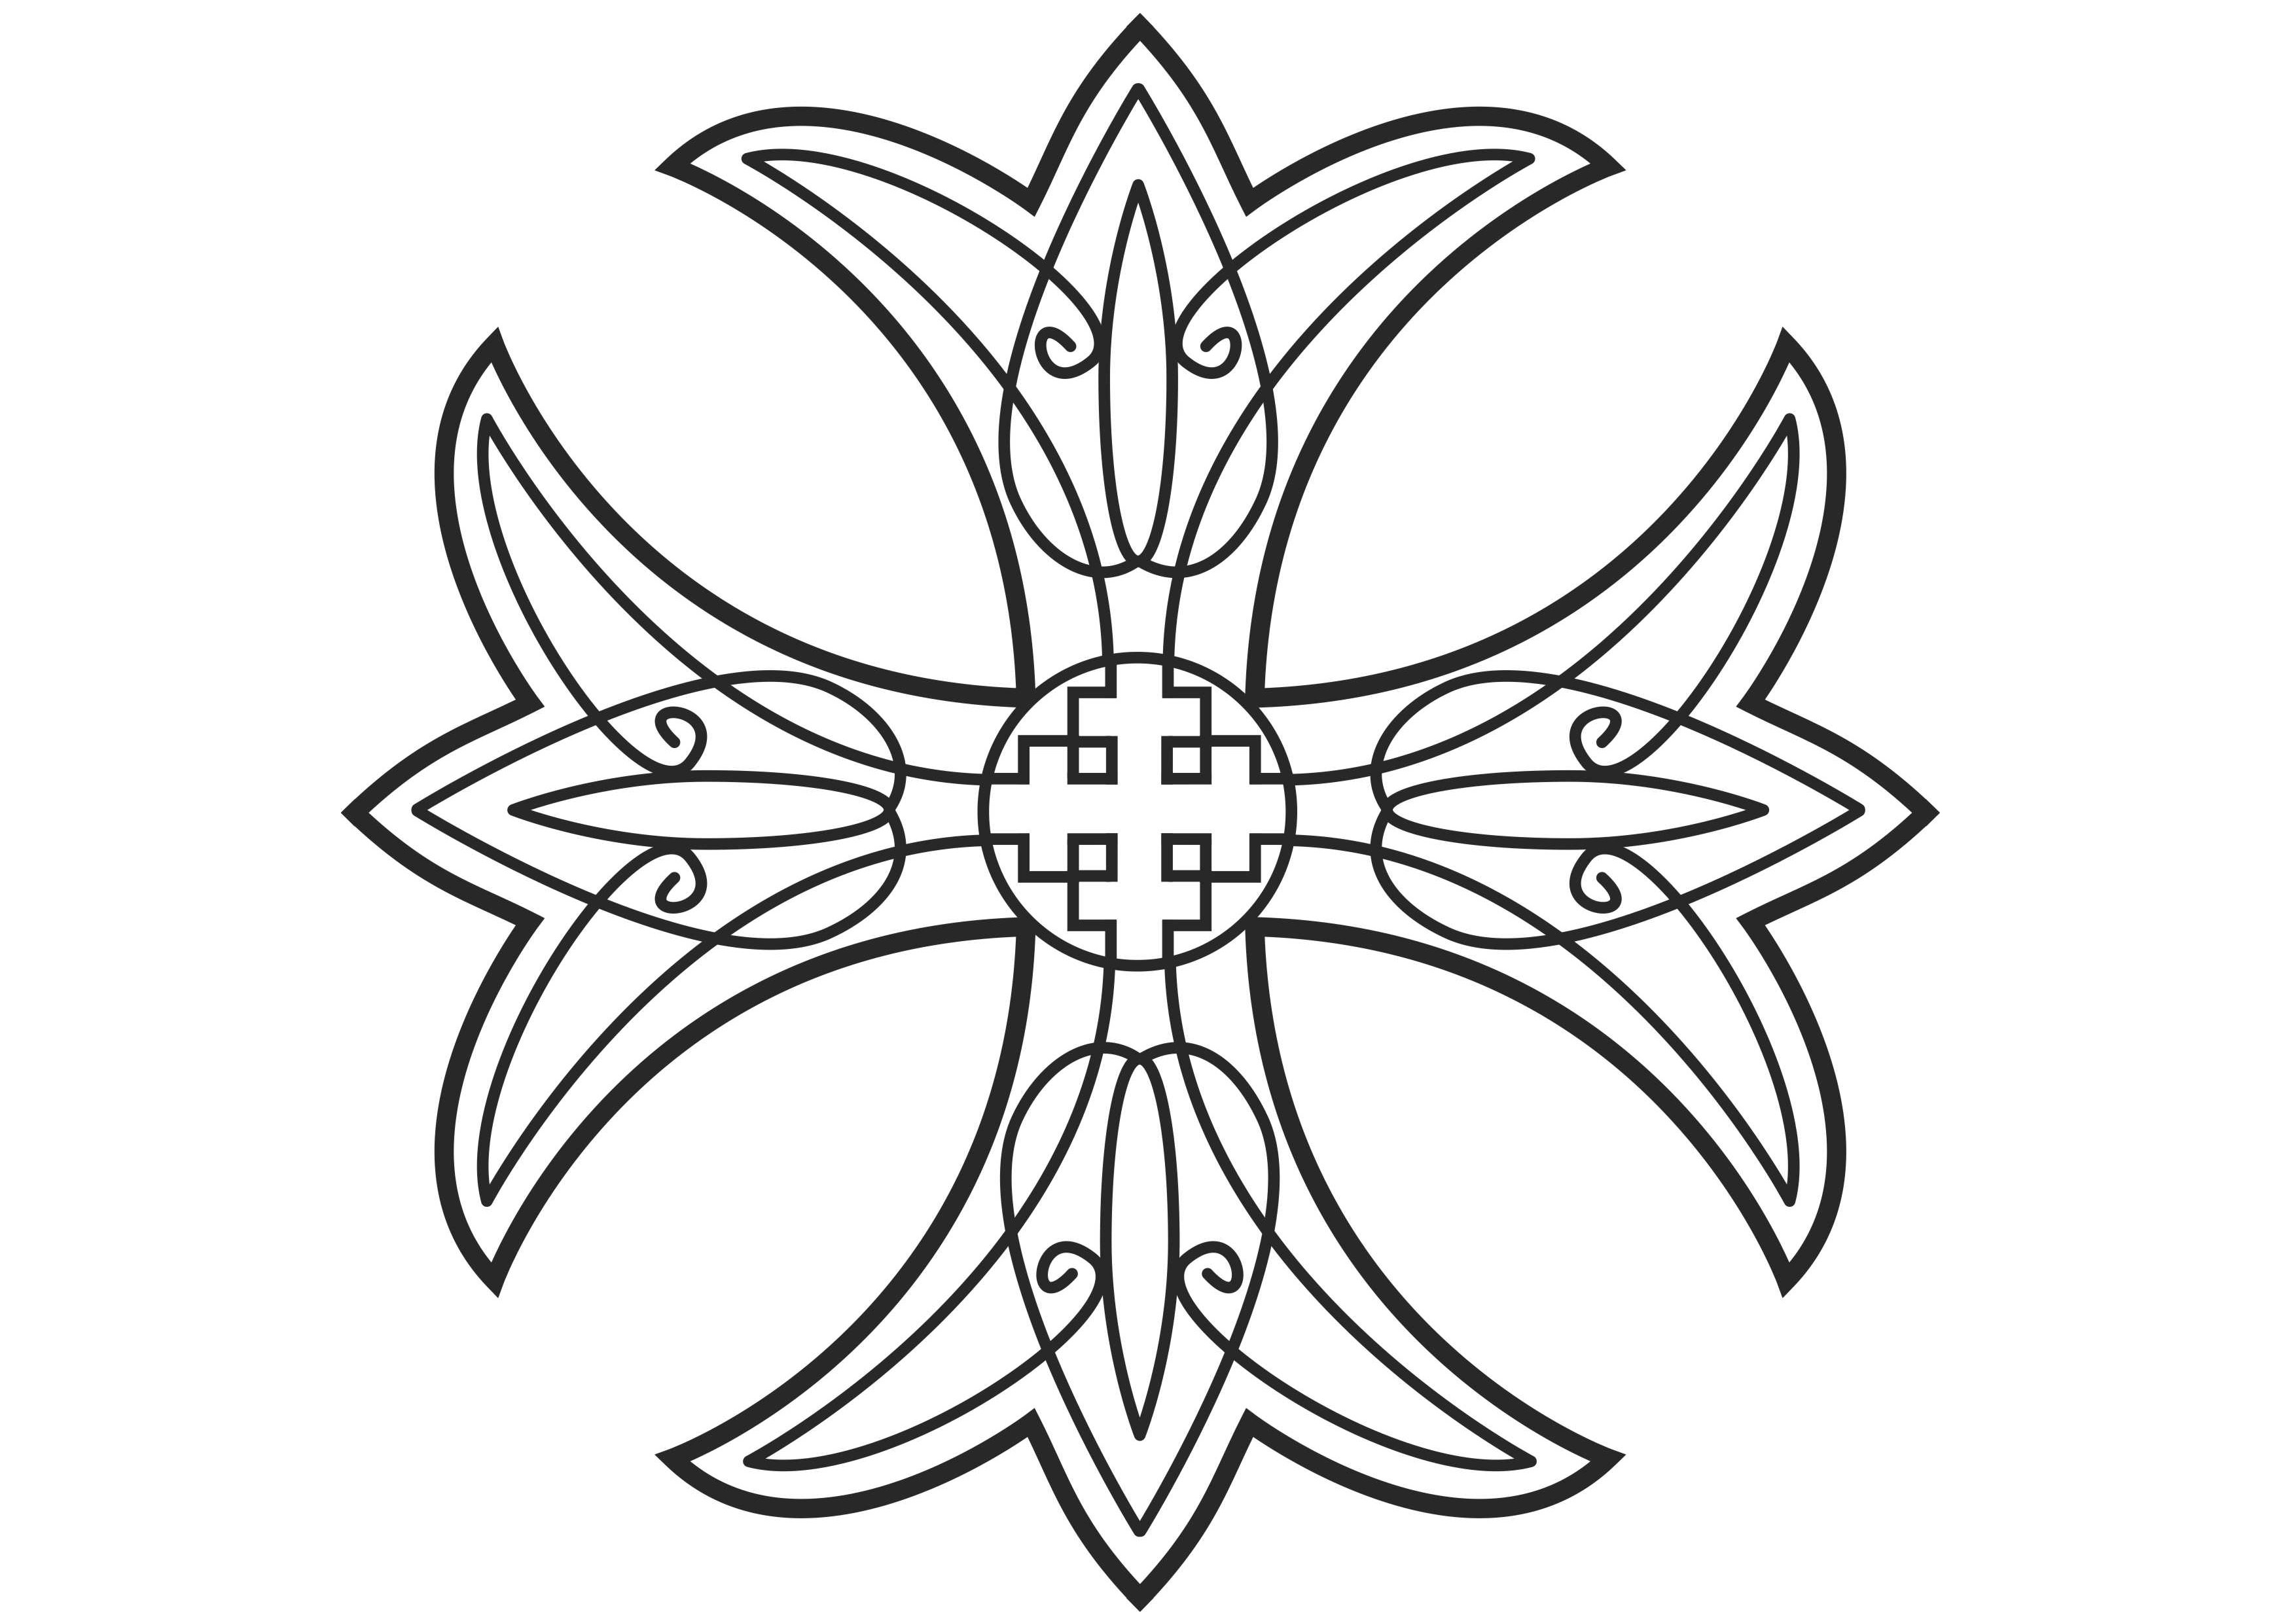 jesus on the cross coloring pages - Coptic Cross 20